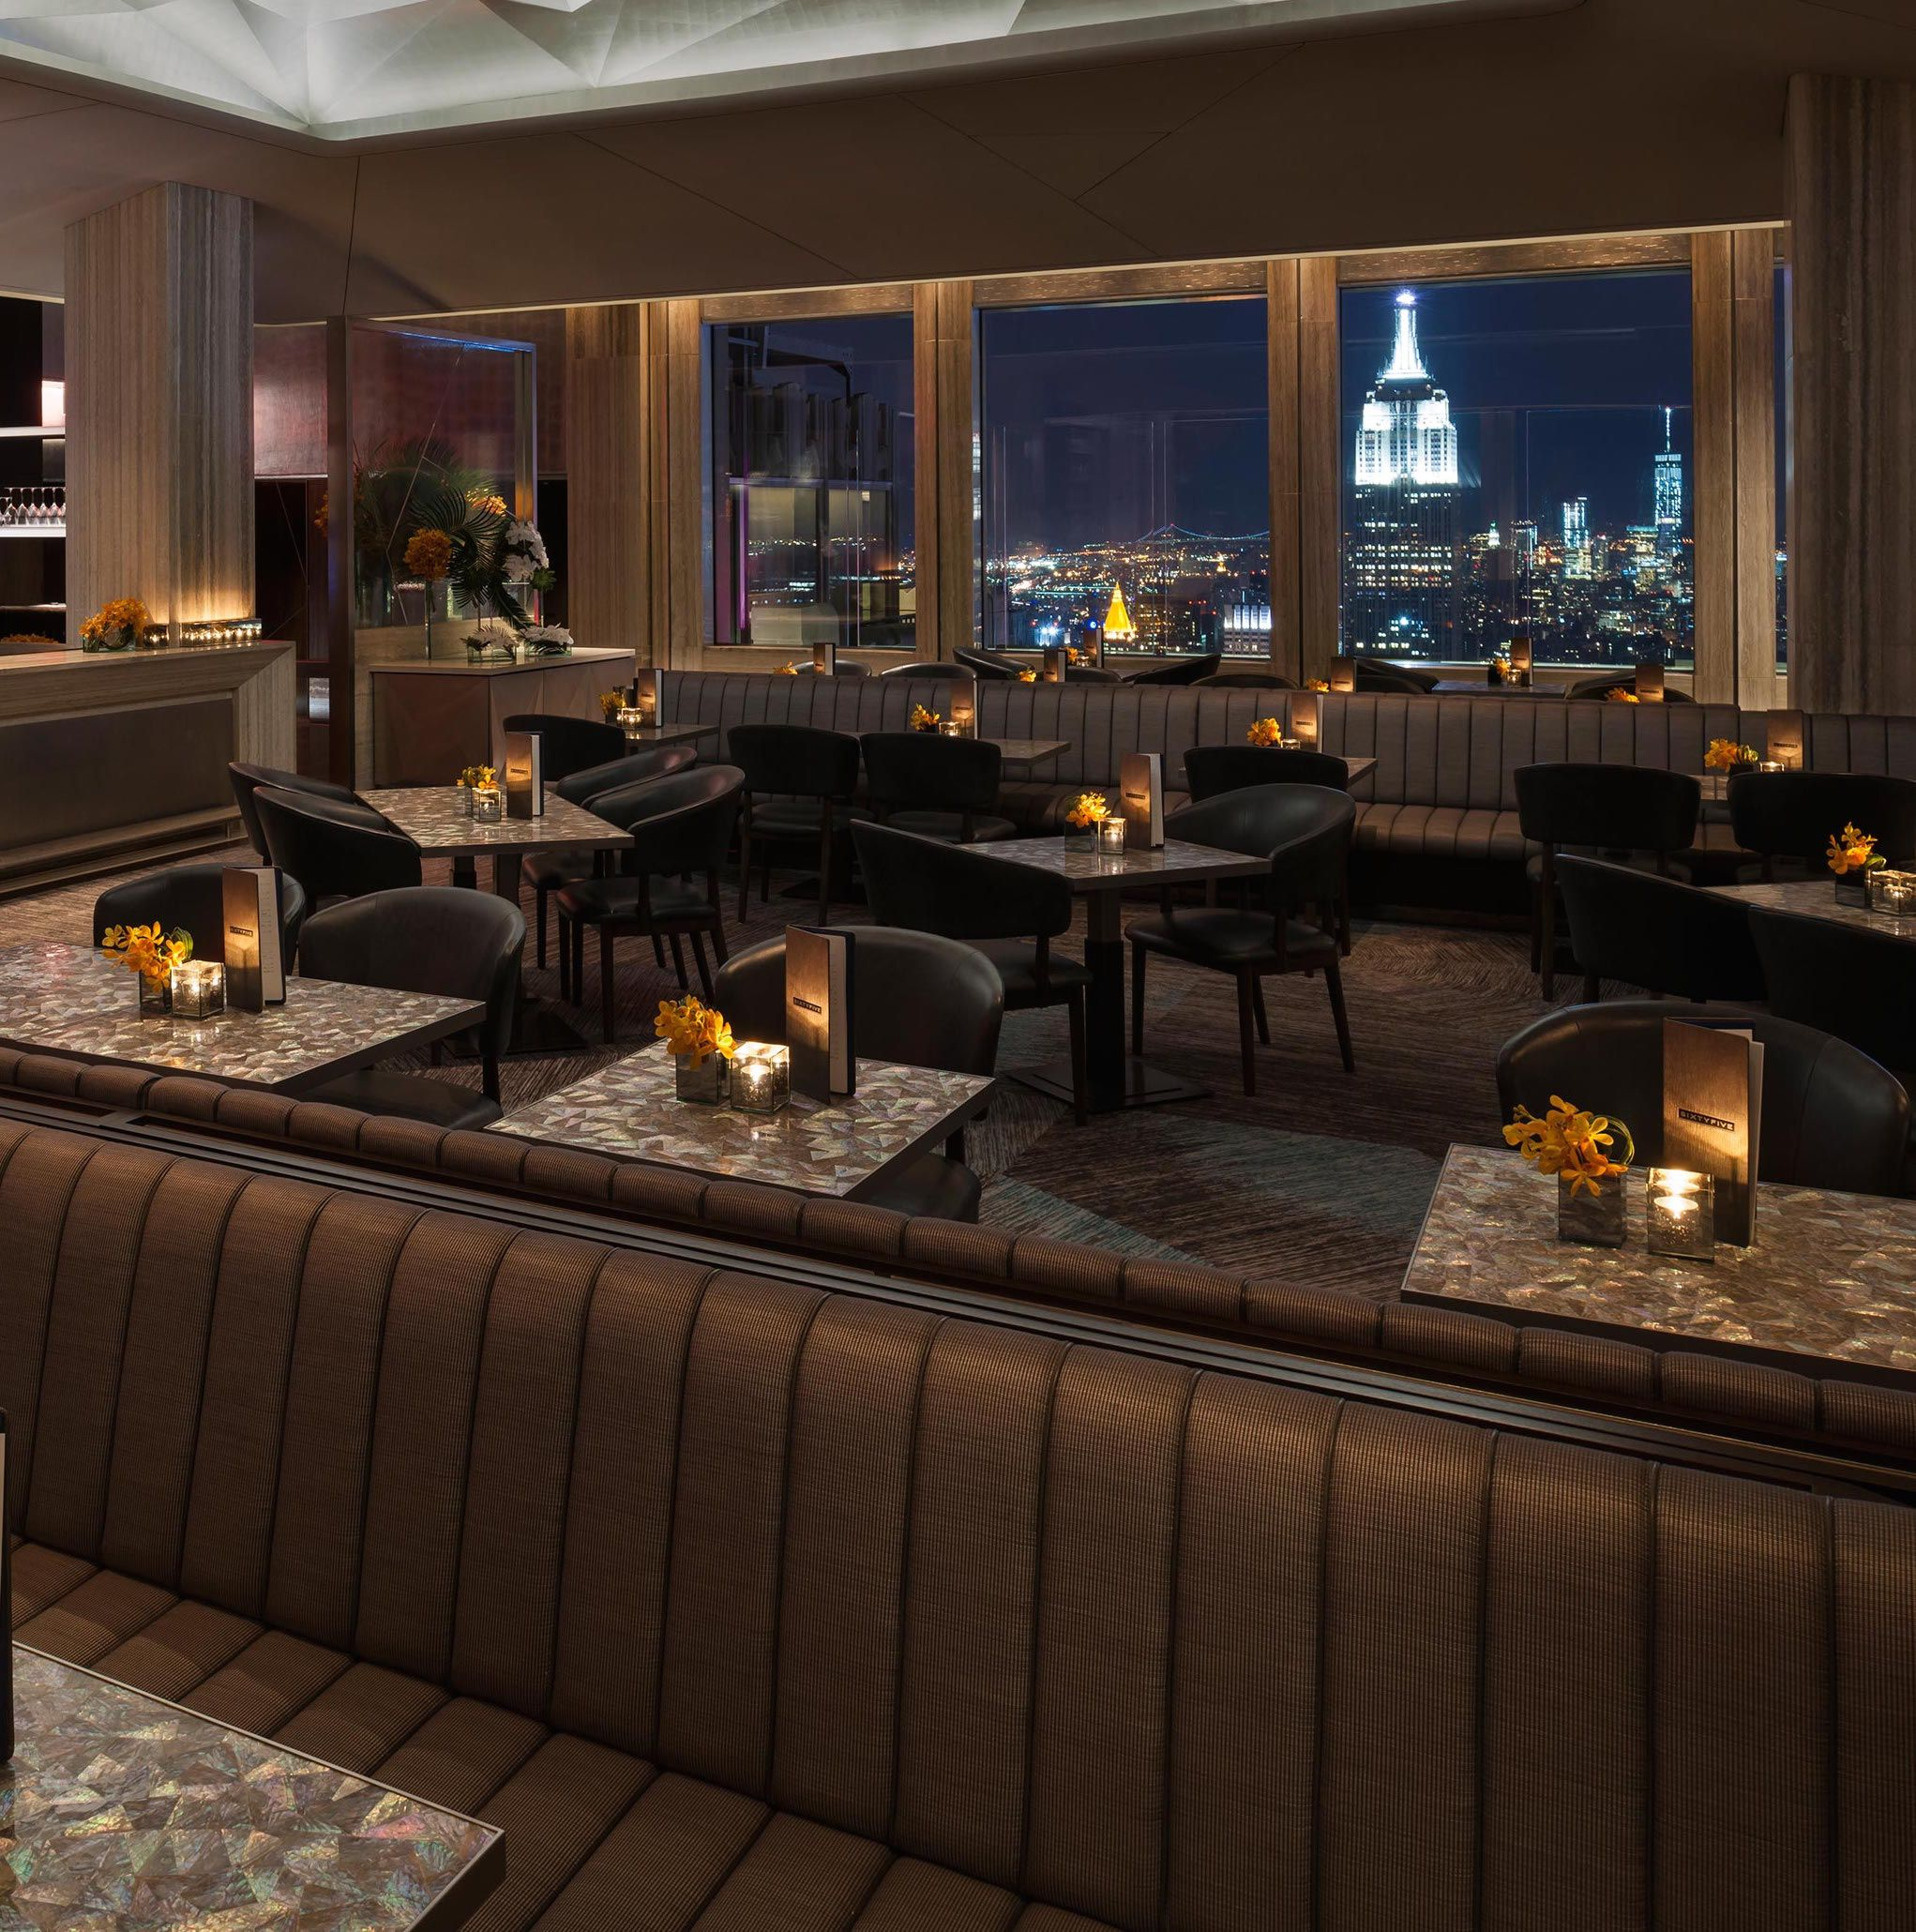 Rainbow Room: SixtyFive Is The Bar Connected To The Rainbow Room In